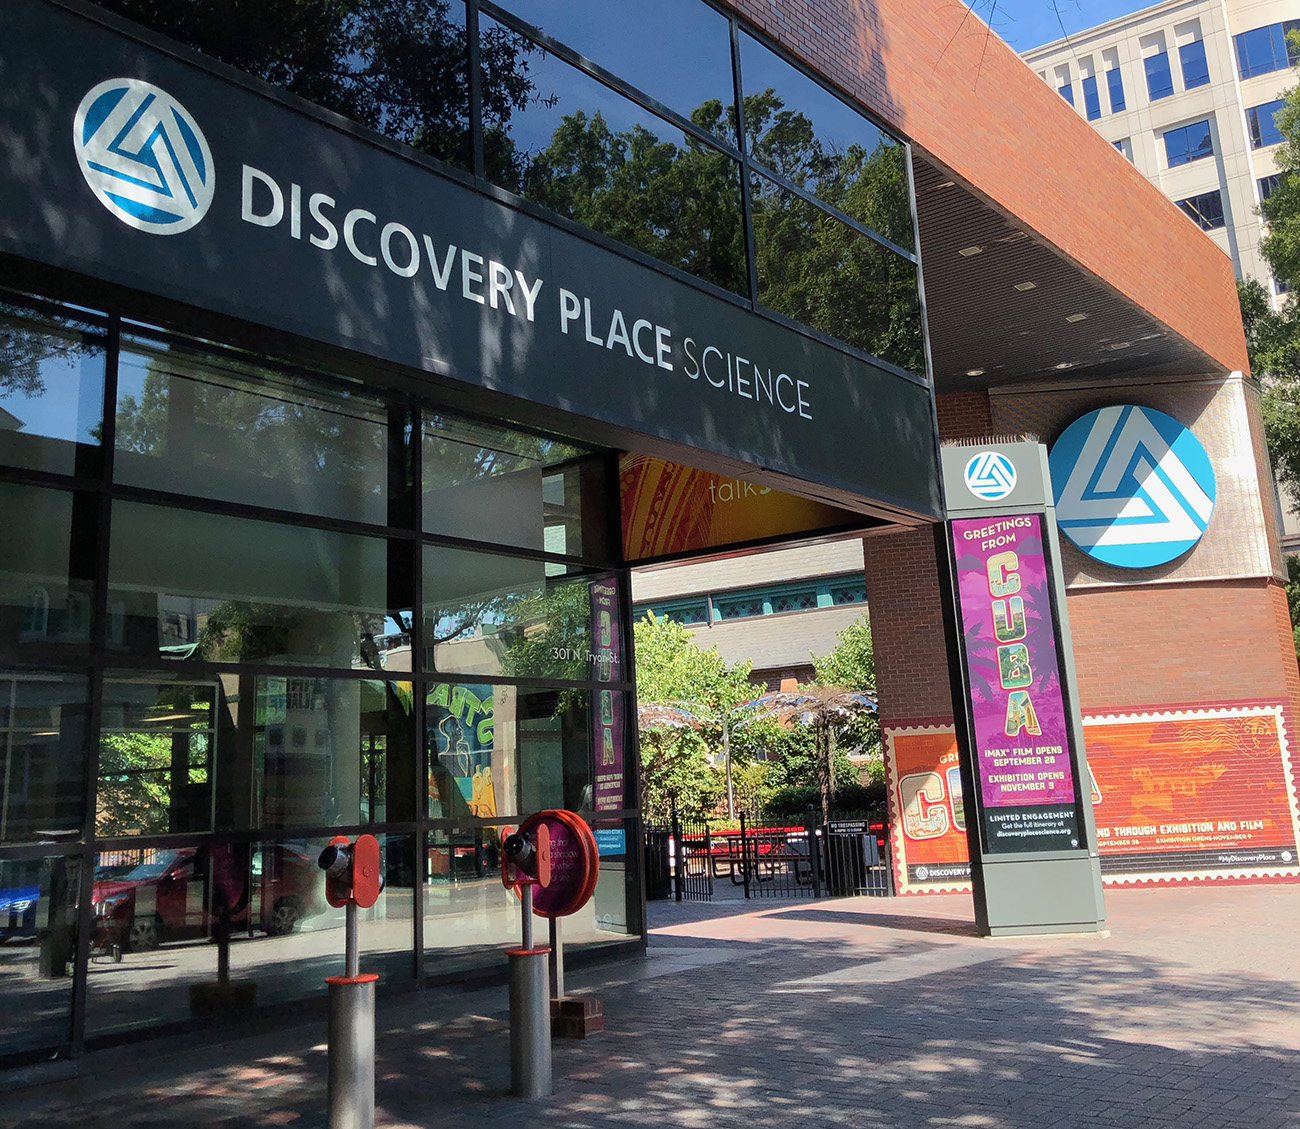 Discovery Place Science to host Antarctica-themed adult sleepover with a bar. Tickets cost $105